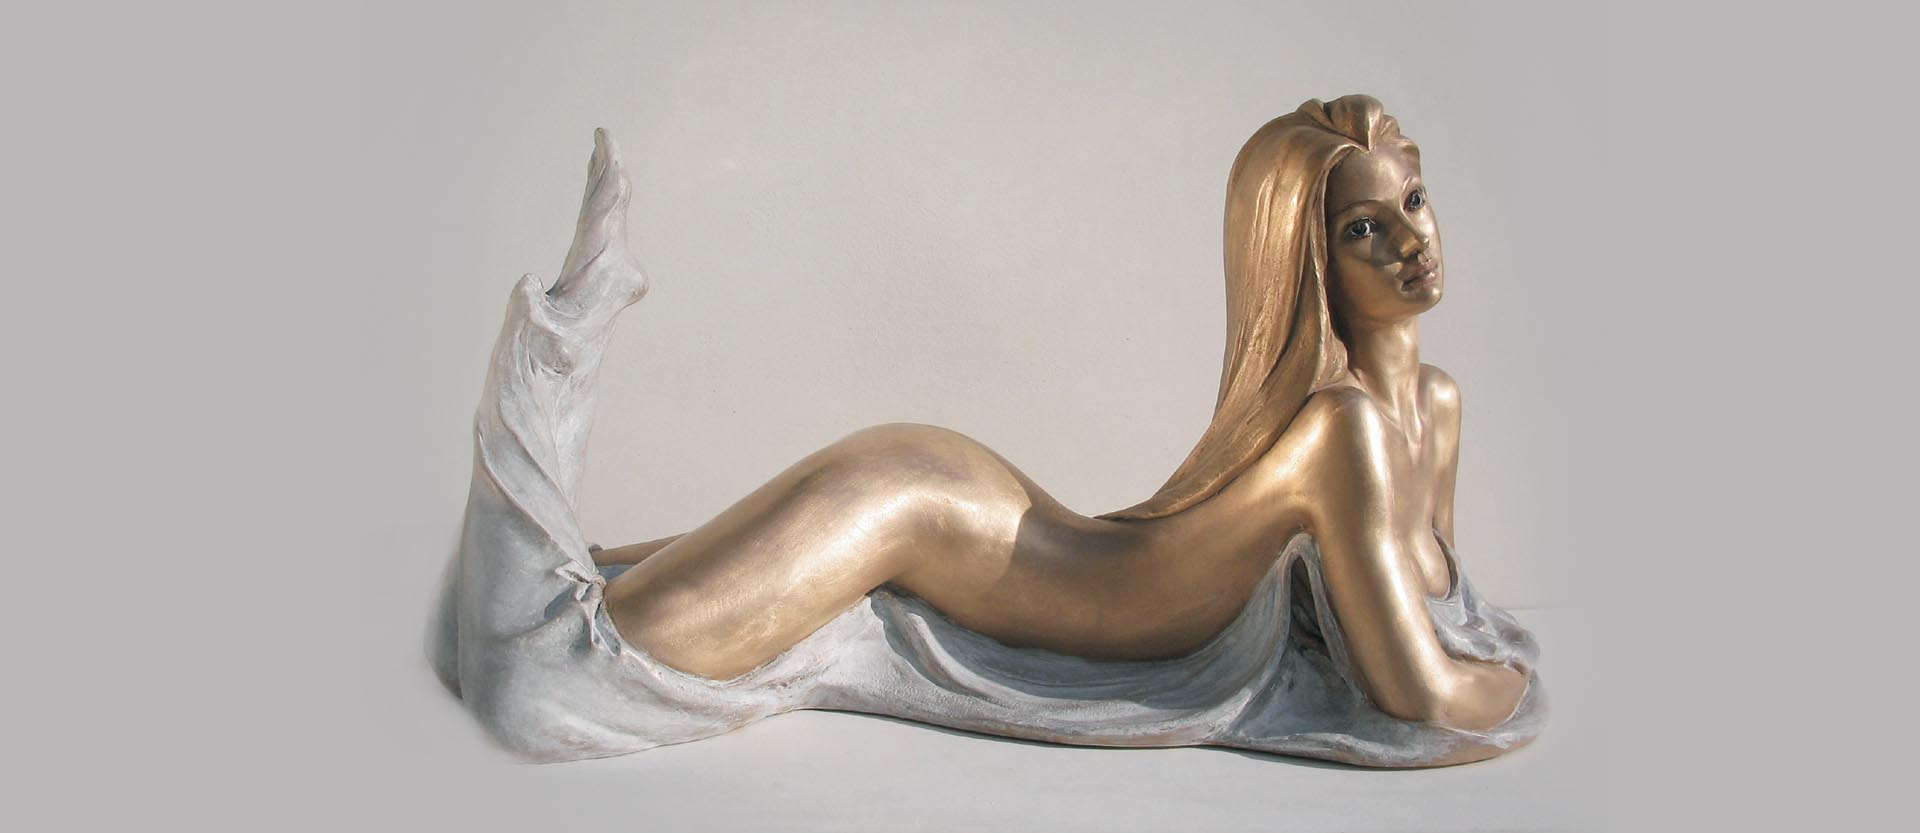 faq-frequently-asked-questions-bronze-sculptures-statue-vittorio-tessaro-cover-01